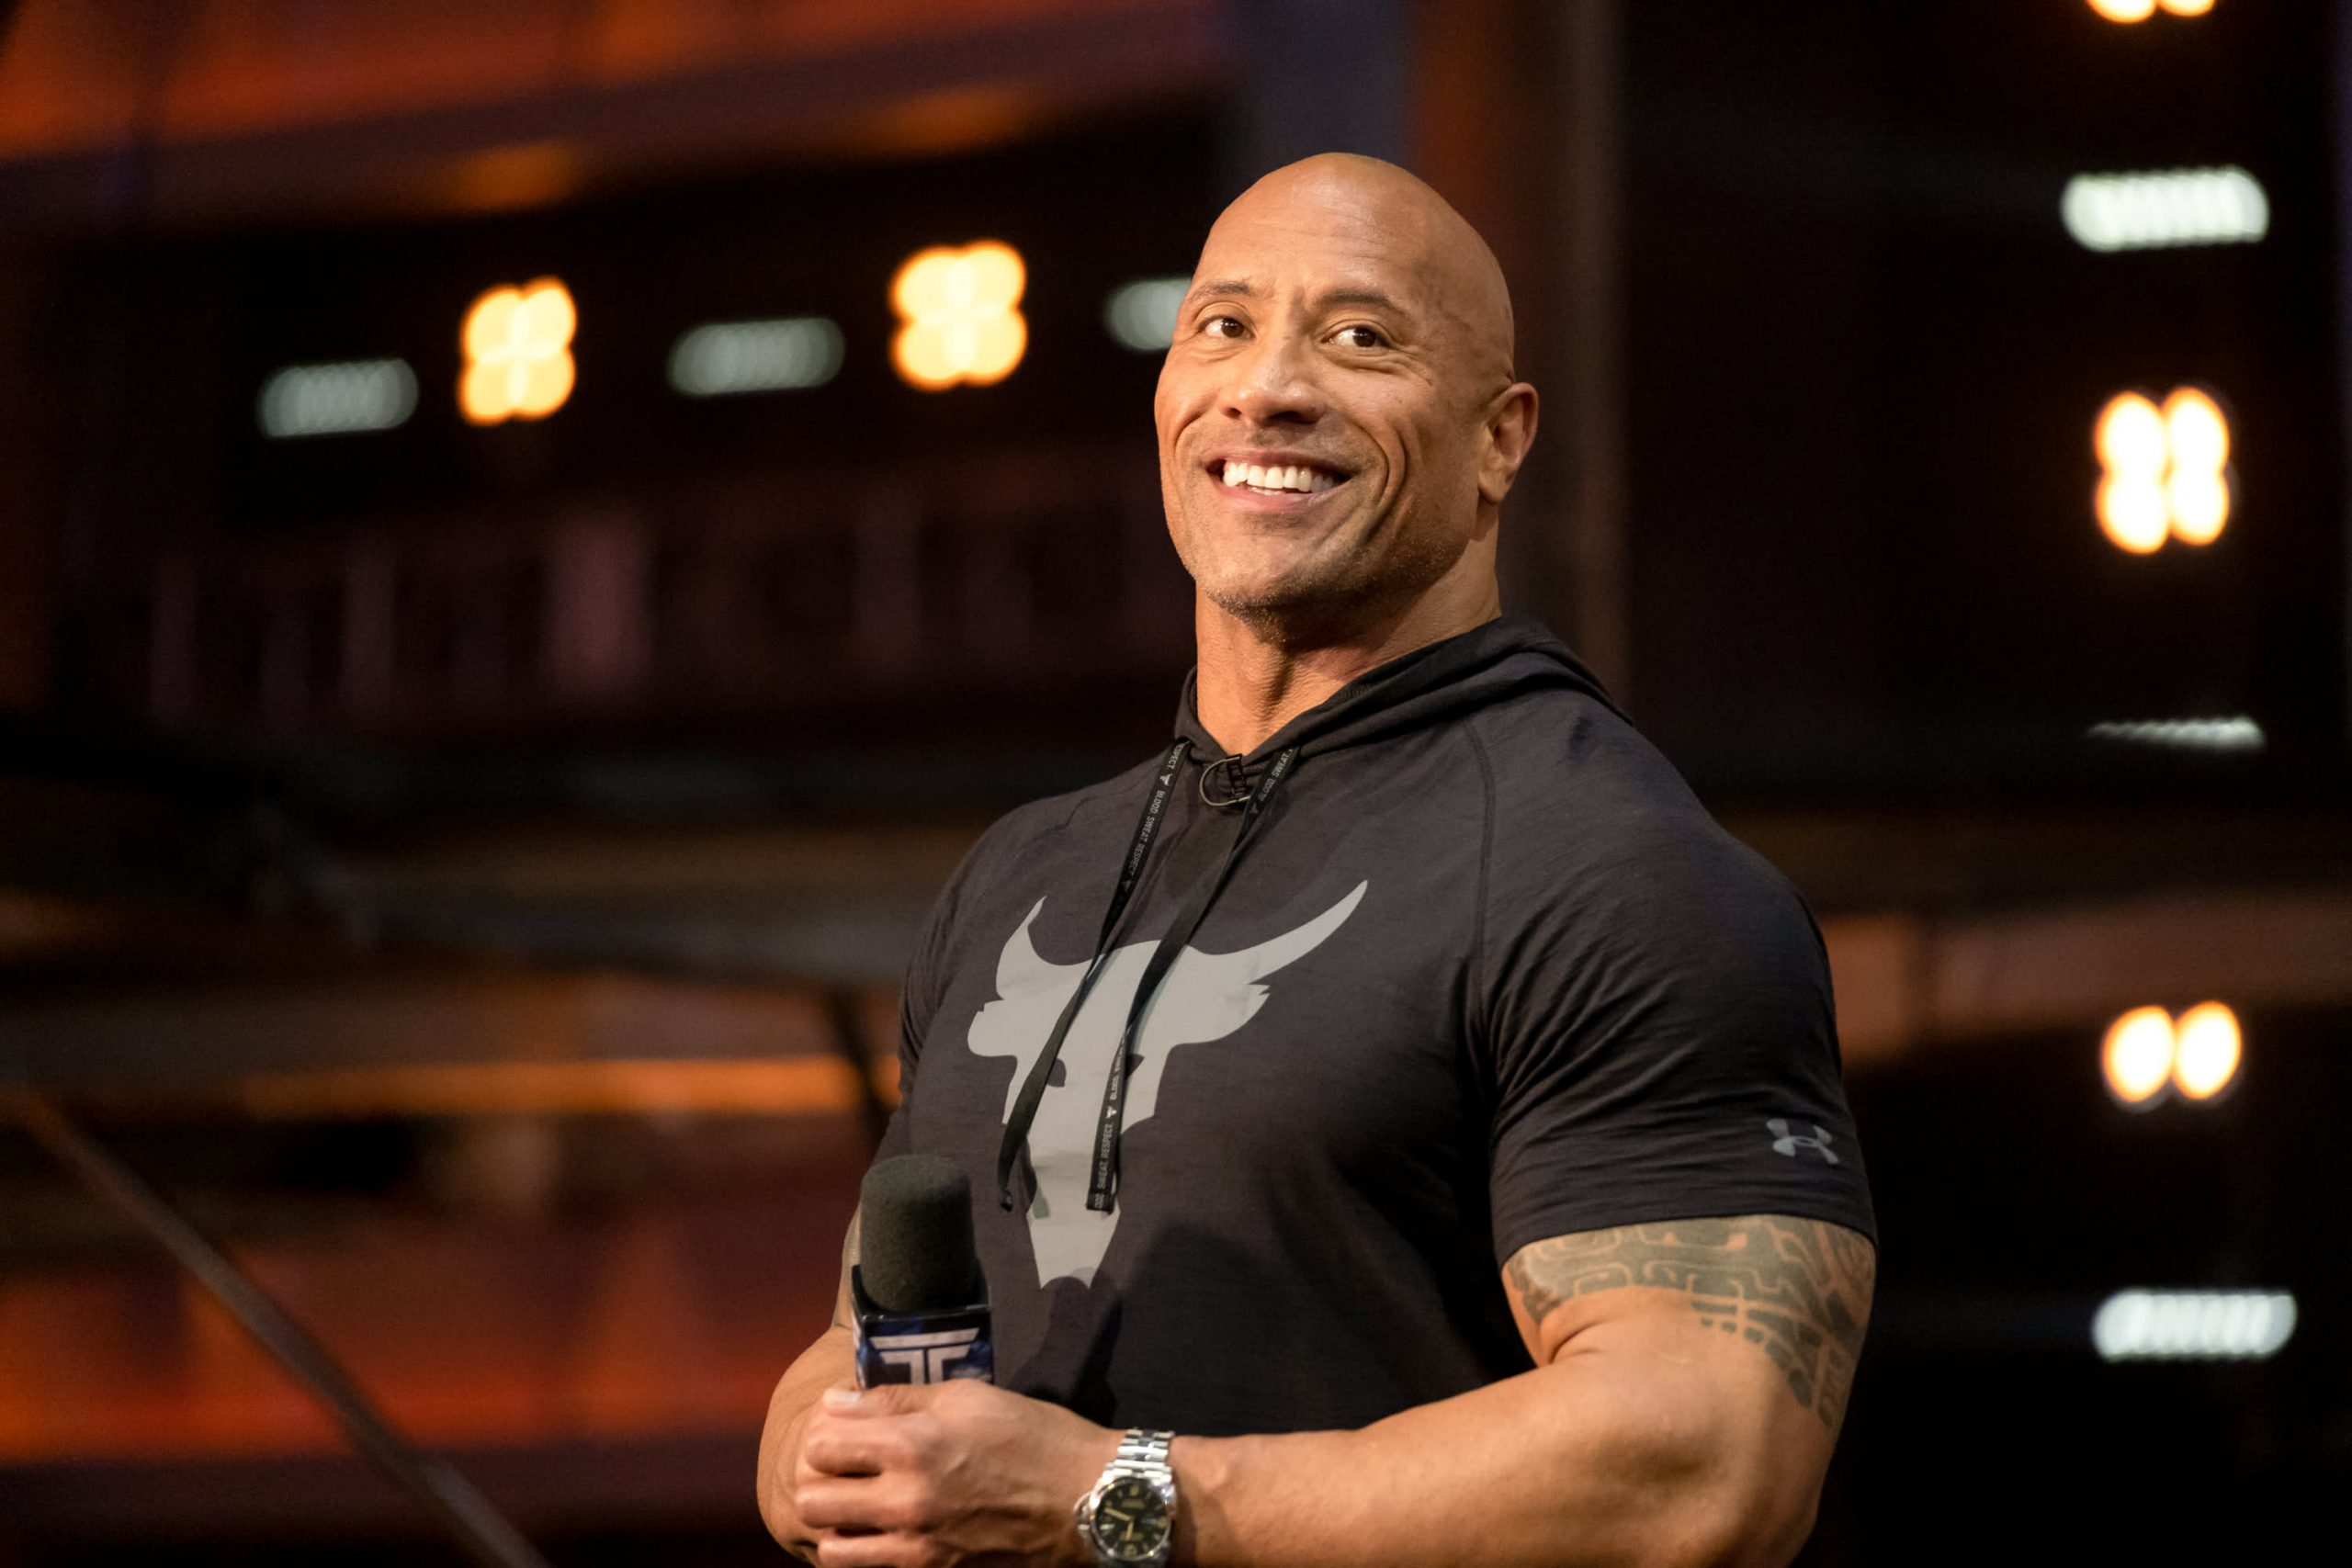 Dwayne 'the Rock' Johnson On Starting A Tequila Business: 'i Am Learning On-the-go' photo